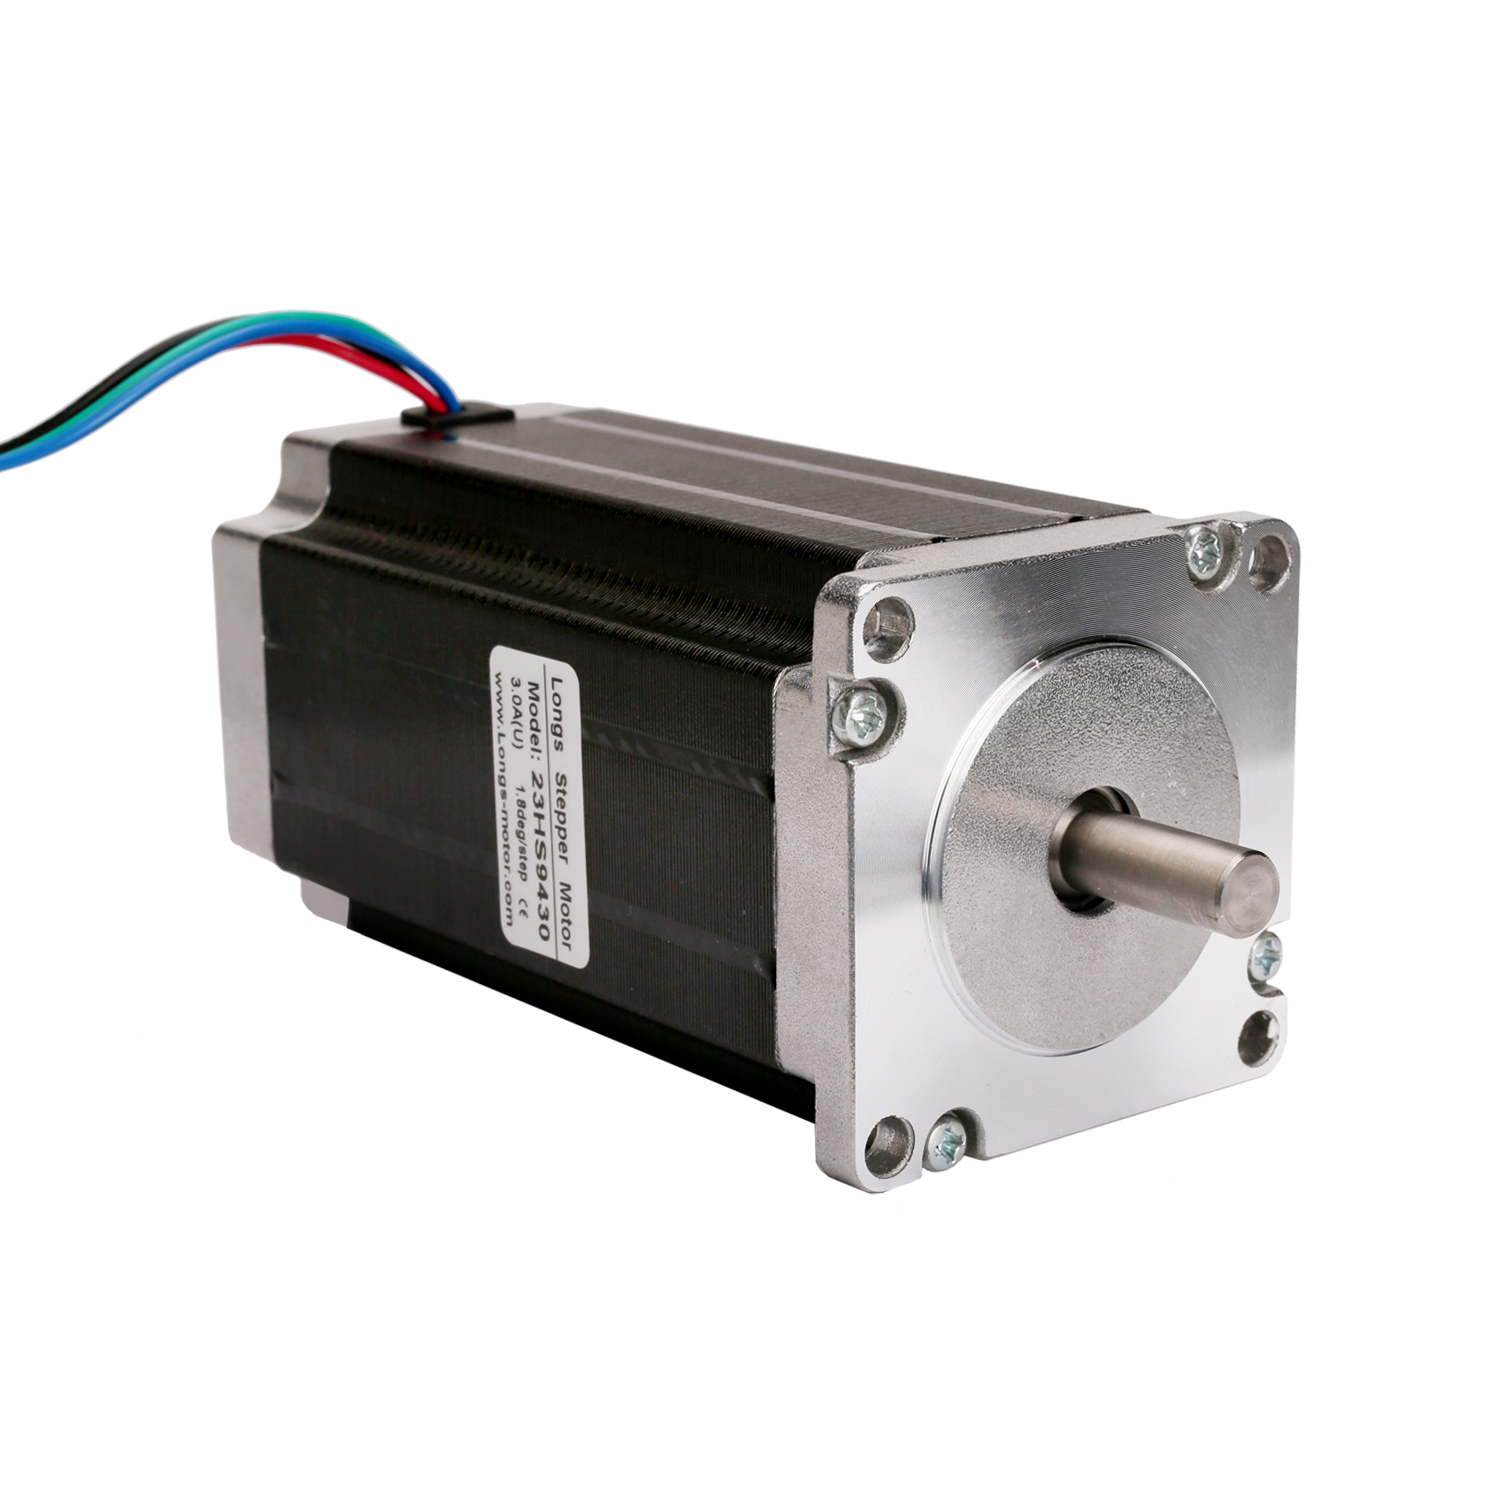 Nema24 florida stepper motor-Featured Image